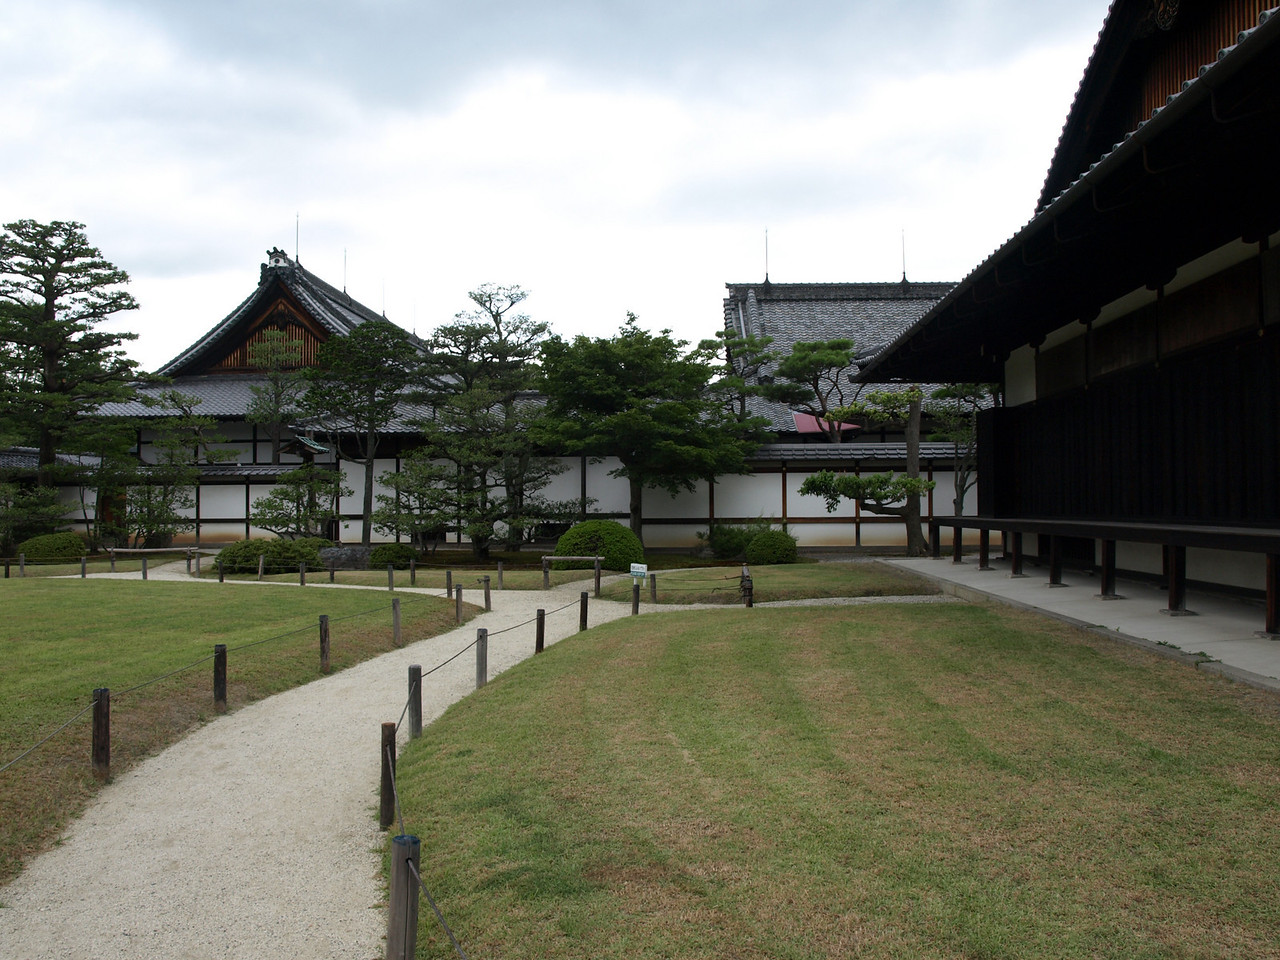 Here we are looking at the Honmaru Palace complex. The original Central Keep built here in the early 1600s burned down in the mid-1700s due to lightning. The current structure was formerly the Katsura Imperial Family residence which was moved here from the Kyoto Imperial Palace back in the Meiji Period around 1890. To the right is the Otsune Palace.